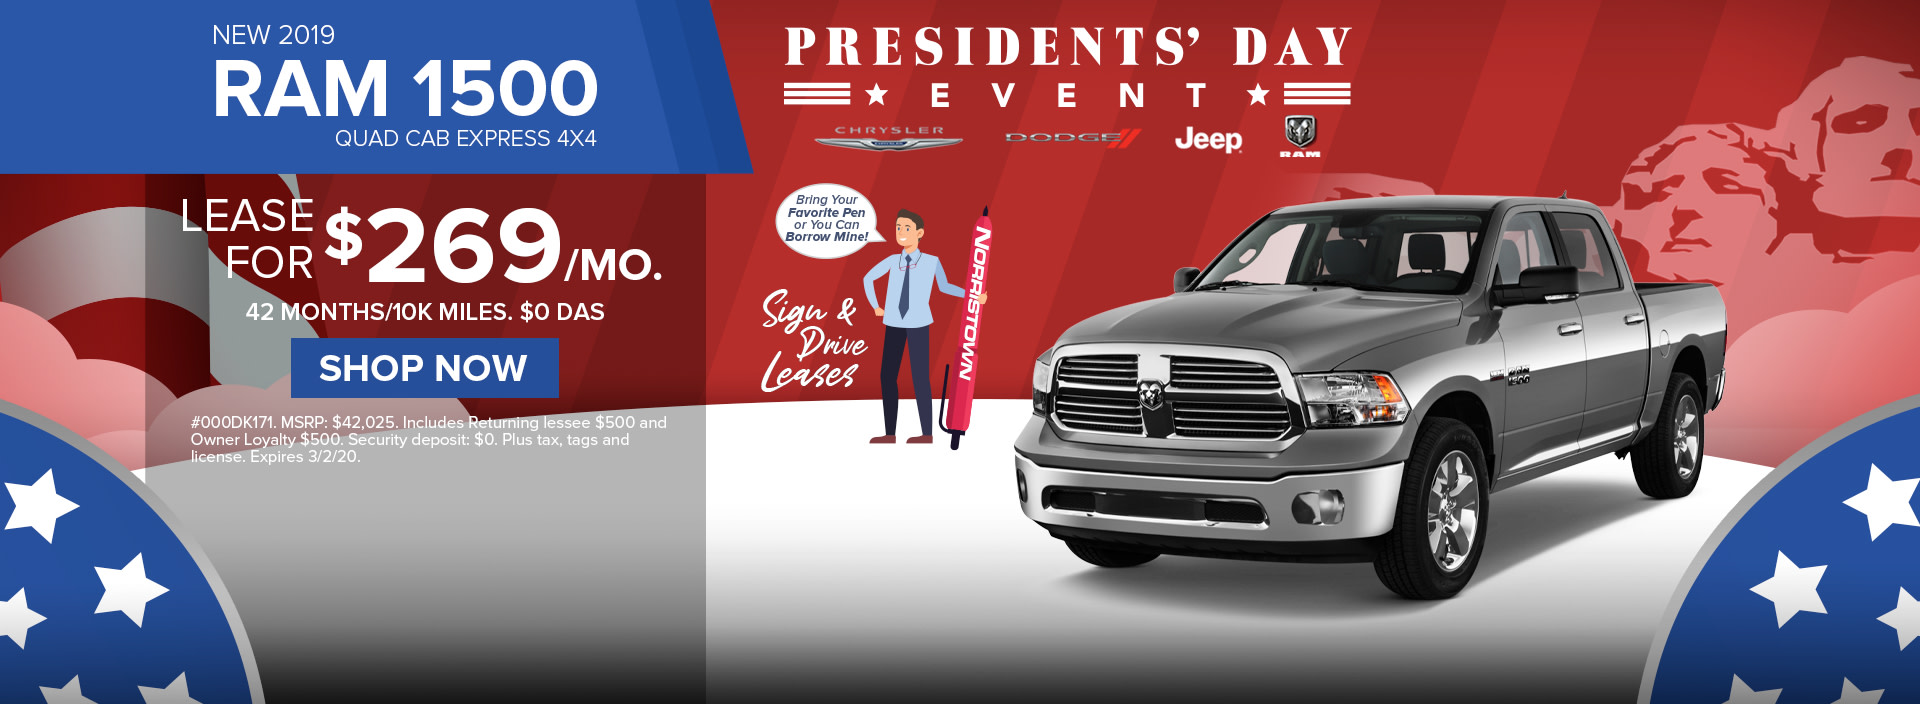 Ram 1500 Sign and Drive Lease